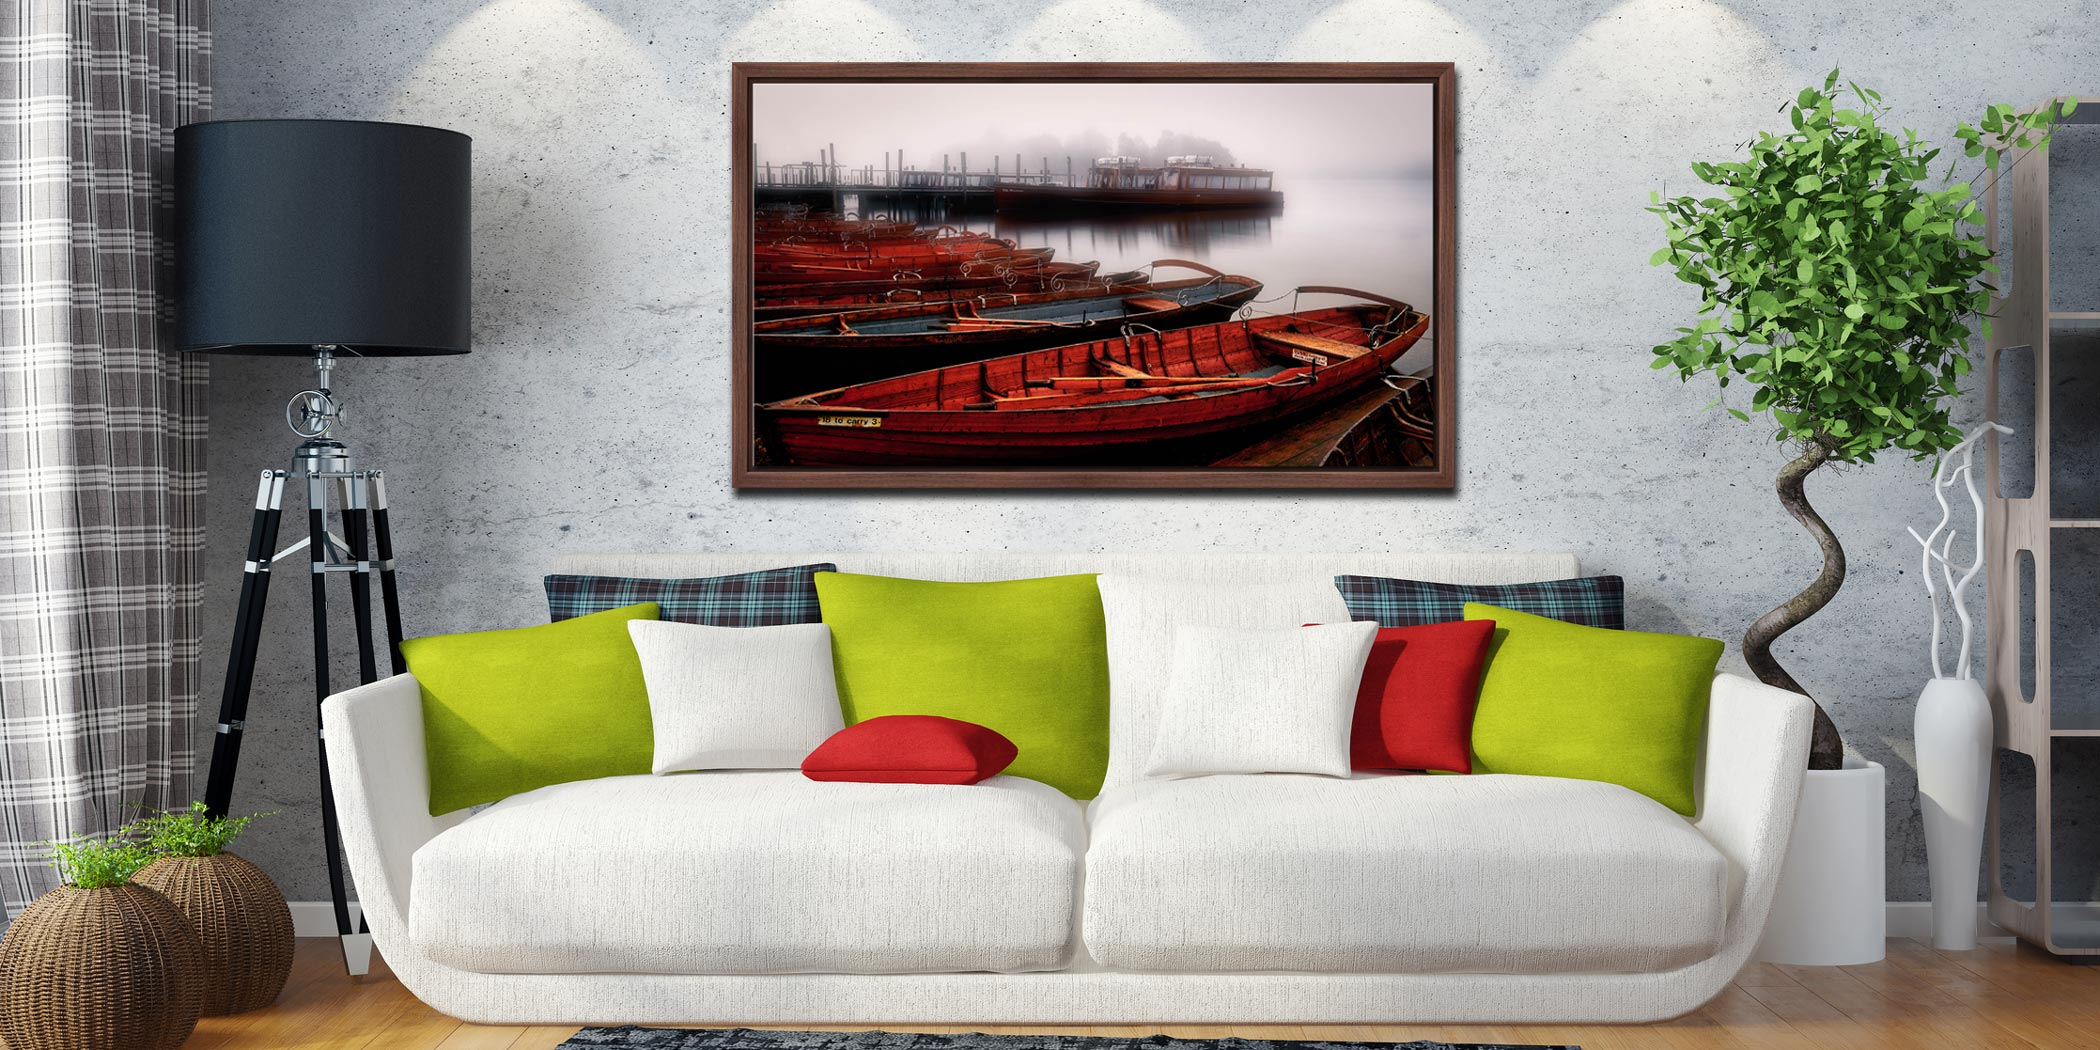 Red Boats in the Mist - Walnut floater frame with acrylic glazing on Wall